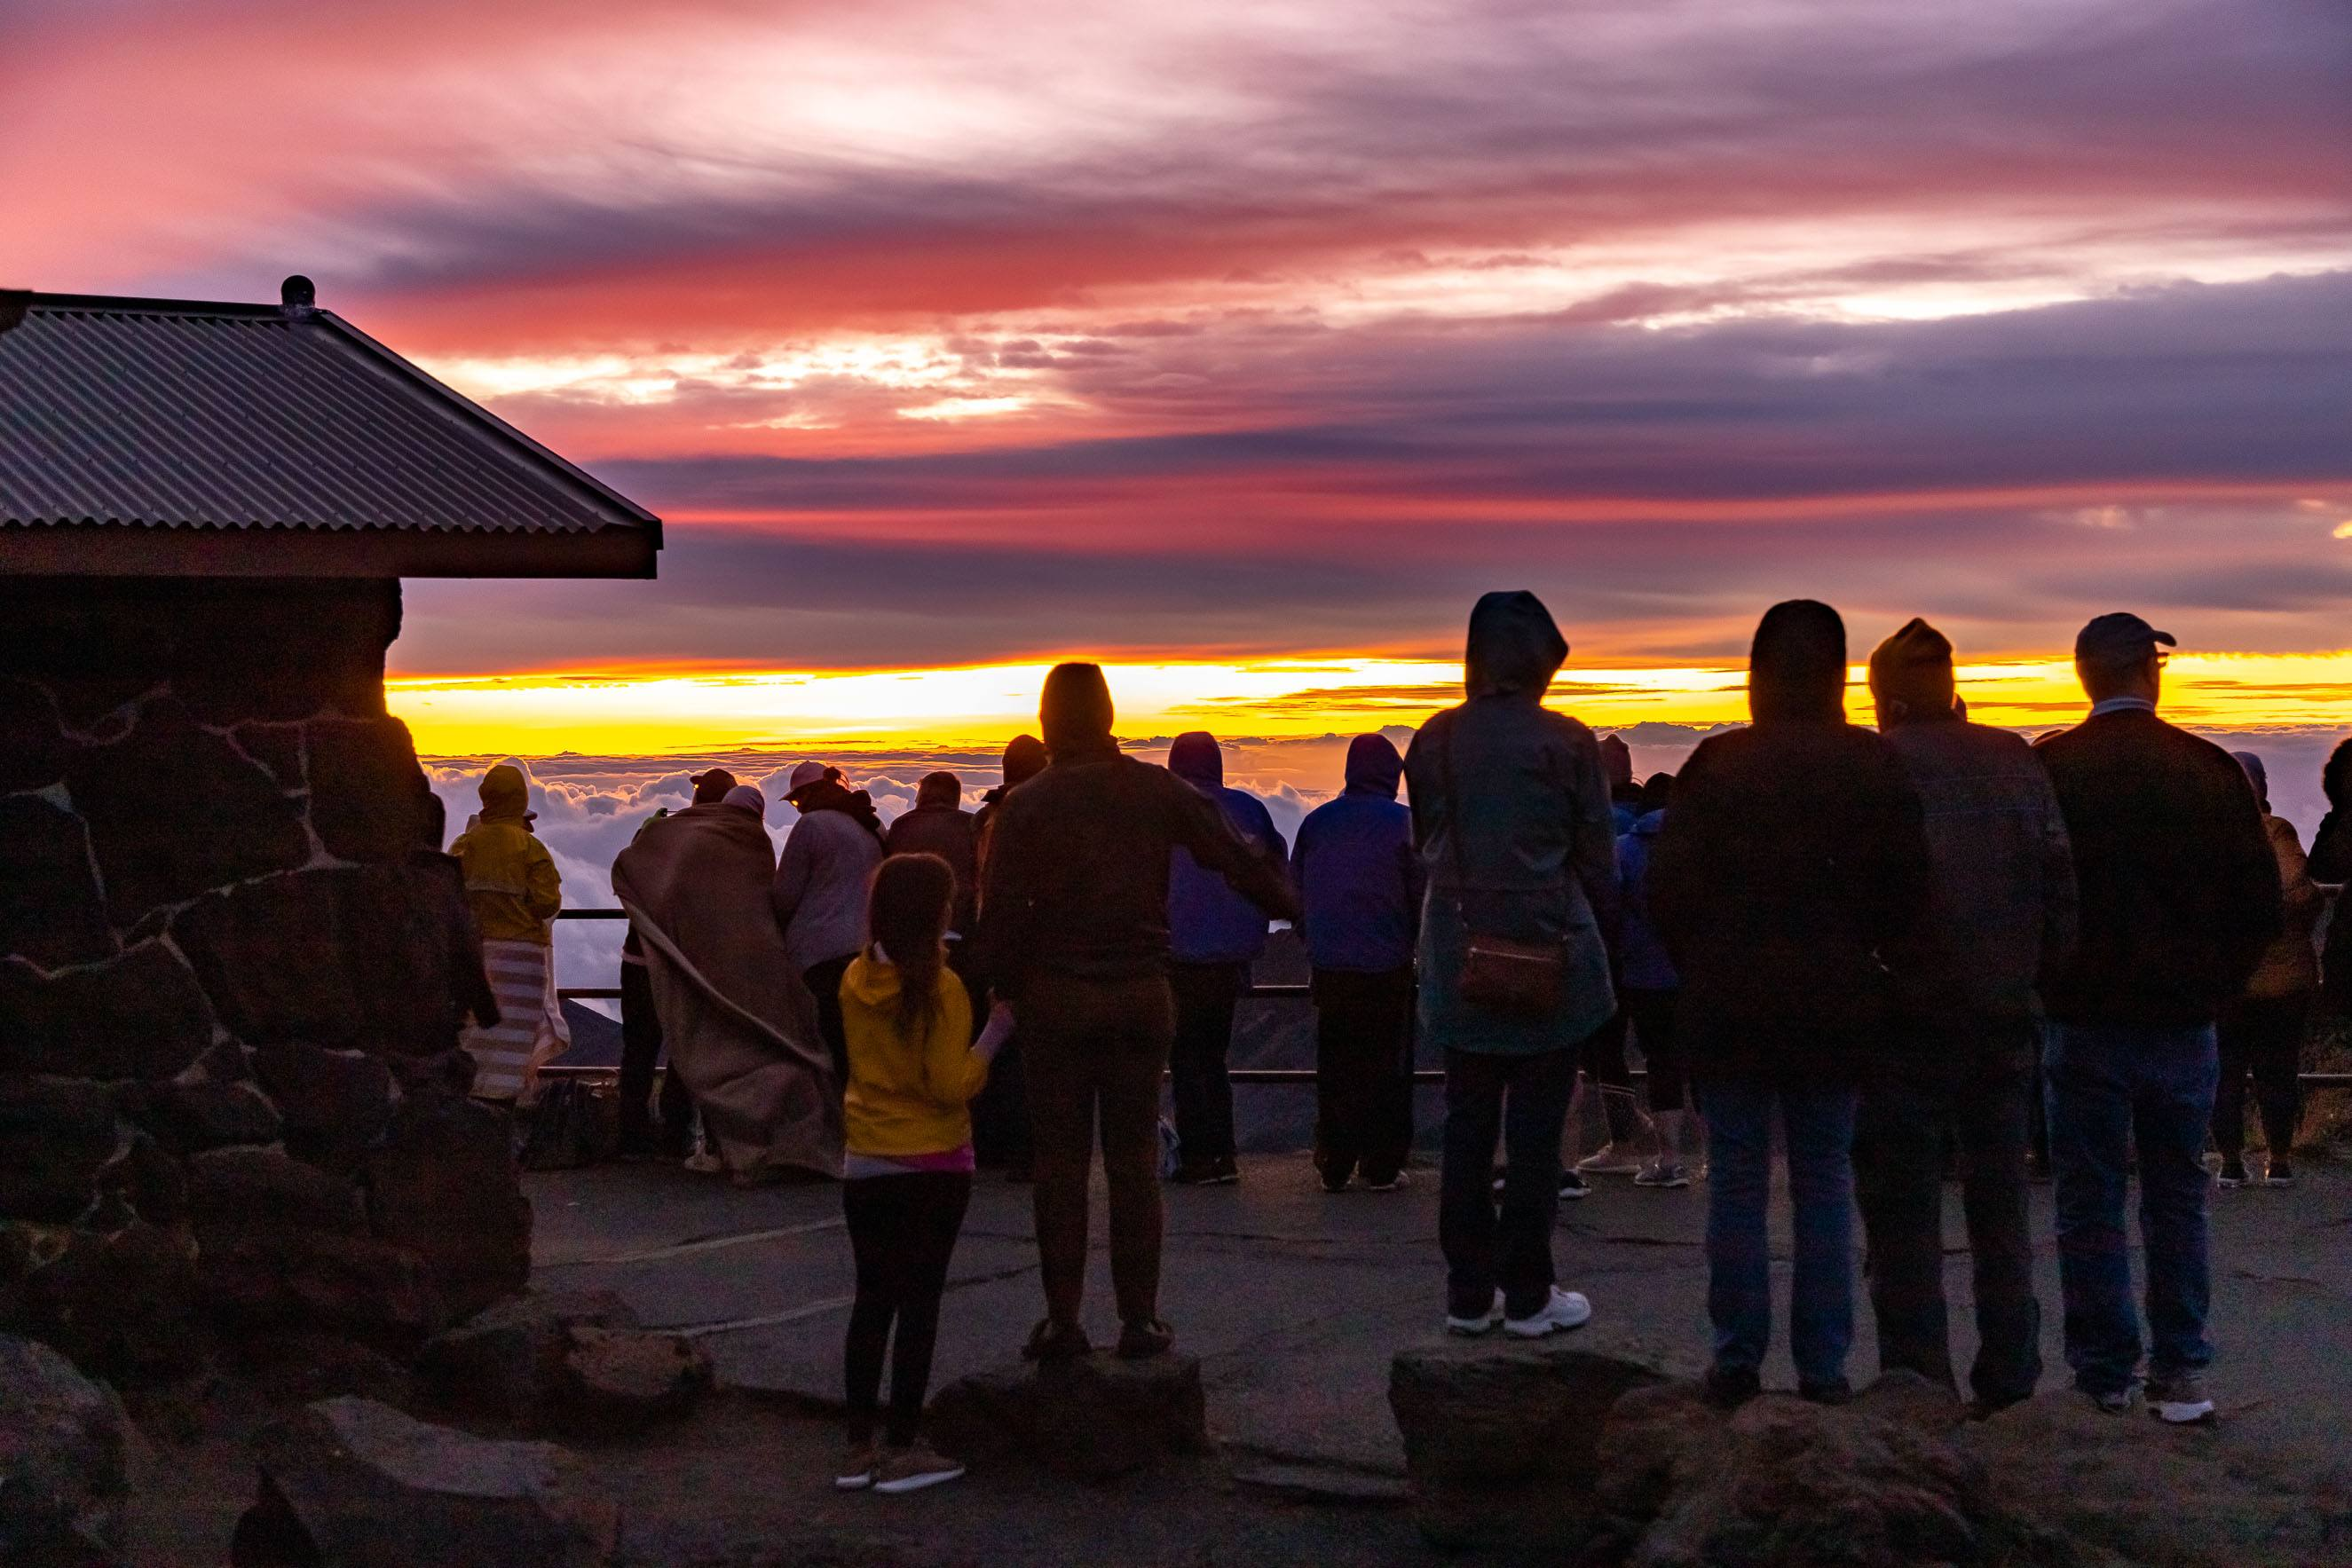 Haleakala Sunrise Crowd at Visitor Center Maui